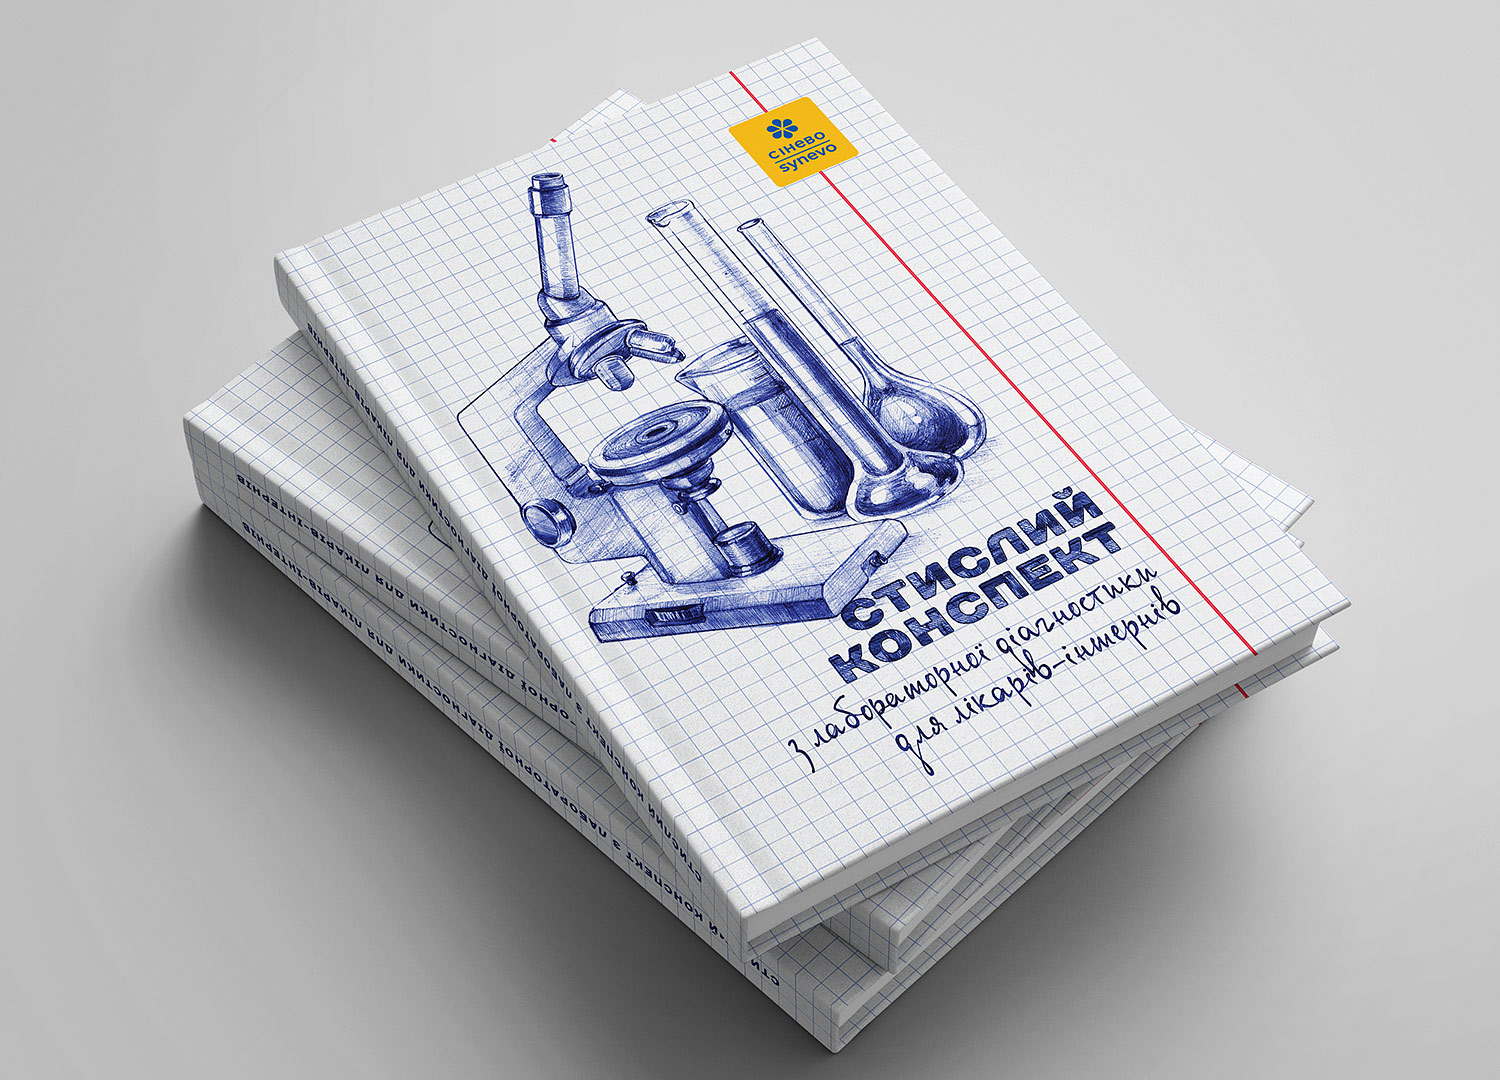 Compendium for medical interns. Drawing with a ball-point pen, a microscope and test tubes on a squared notebook page. Laboratory Synevo compendium cover.